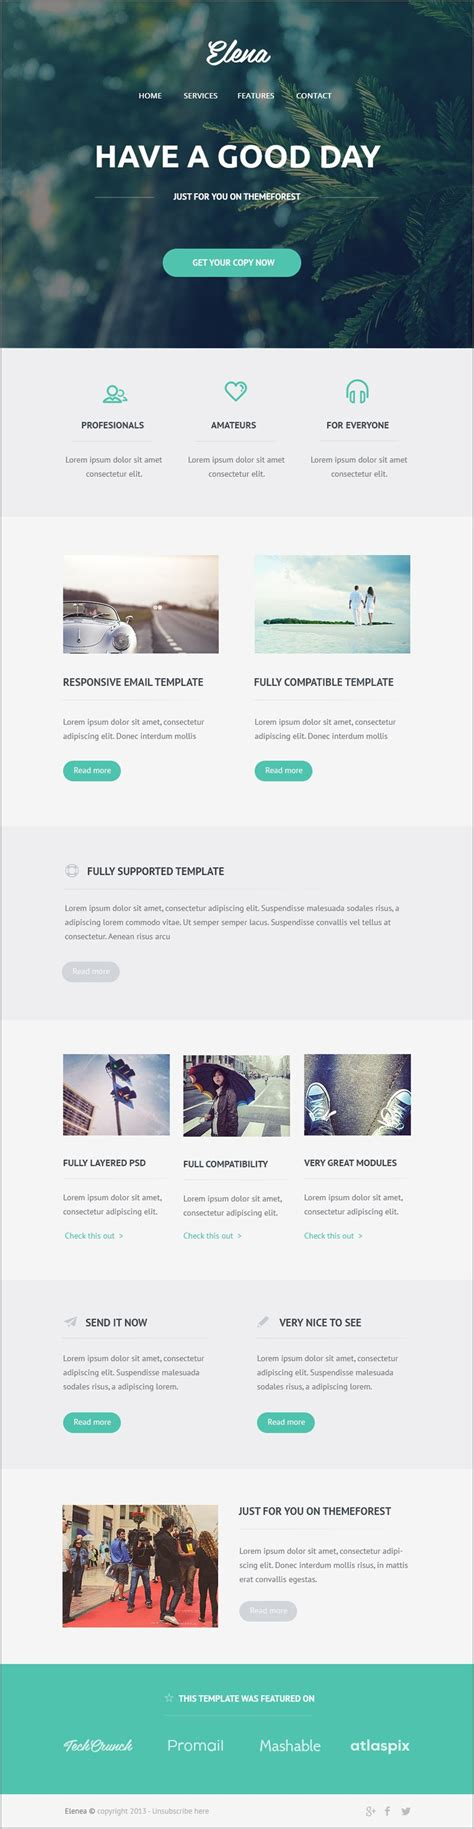 template for email newsletter free email newsletter templates psd 187 css author